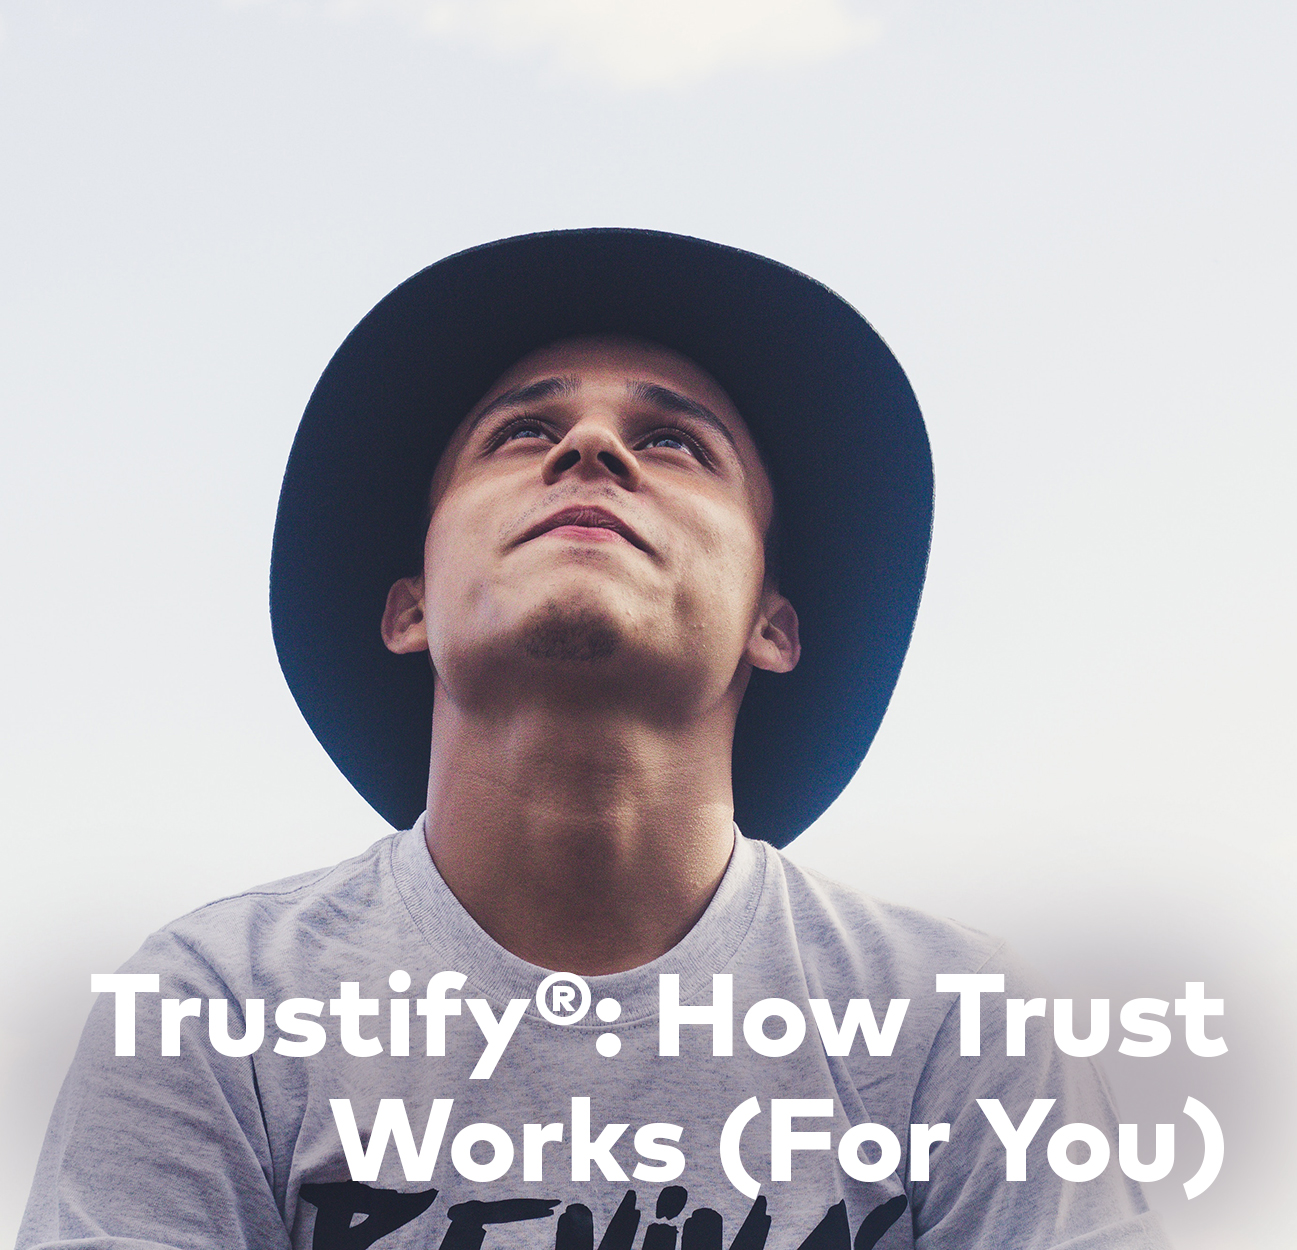 Mext_Consulting_Firm_Melbourne_Trust_Trustify_Your_HTW.jpg